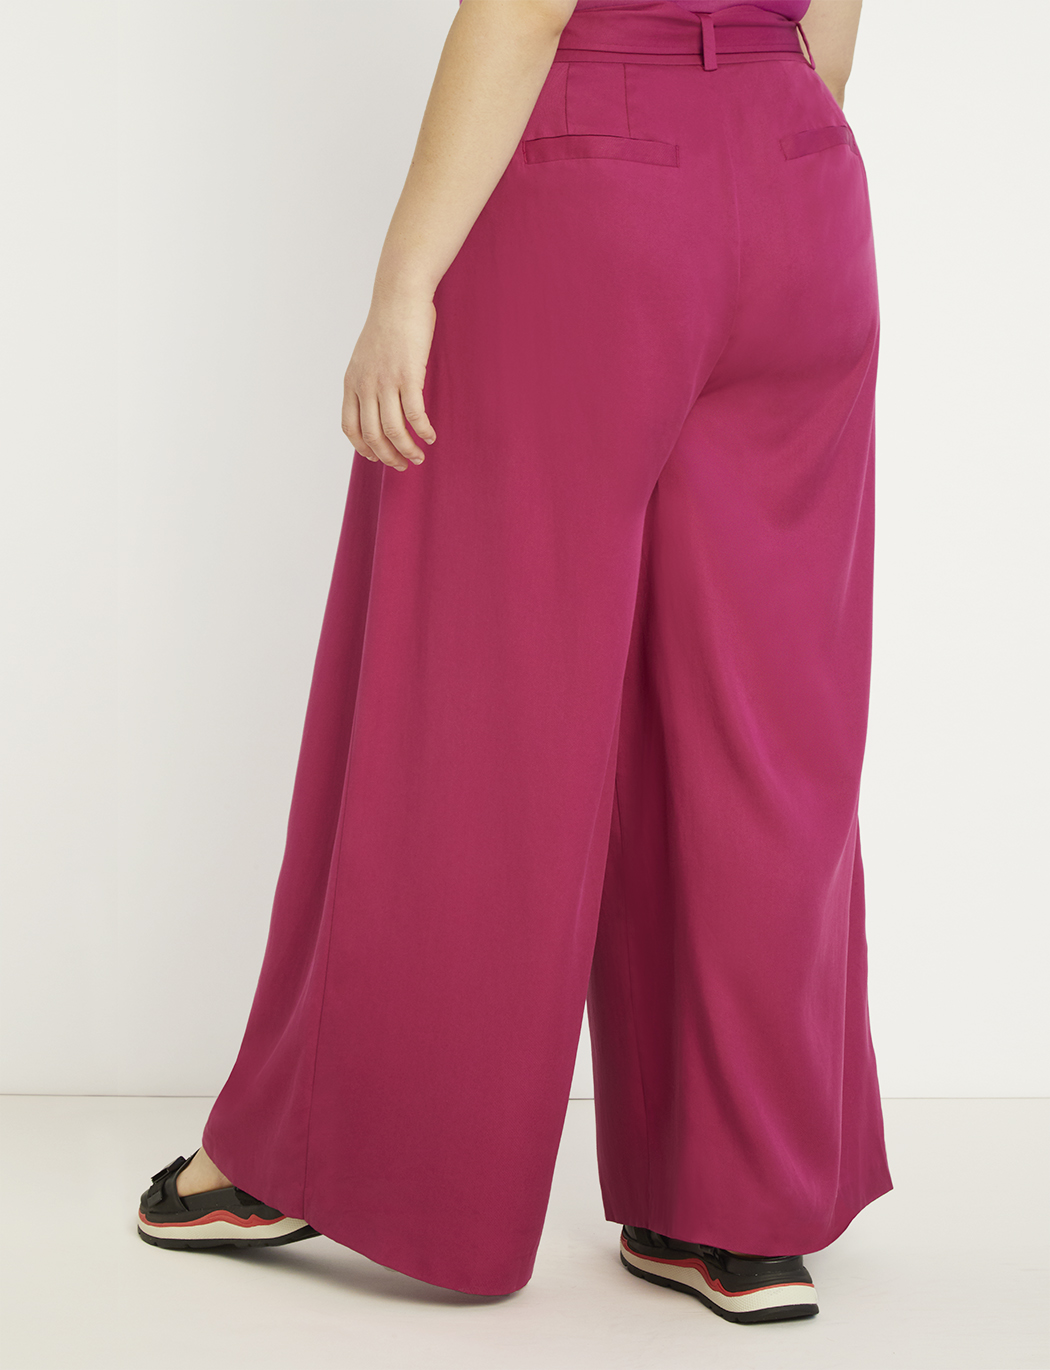 Priscilla Ono x ELOQUII Belted Palazzo Pant